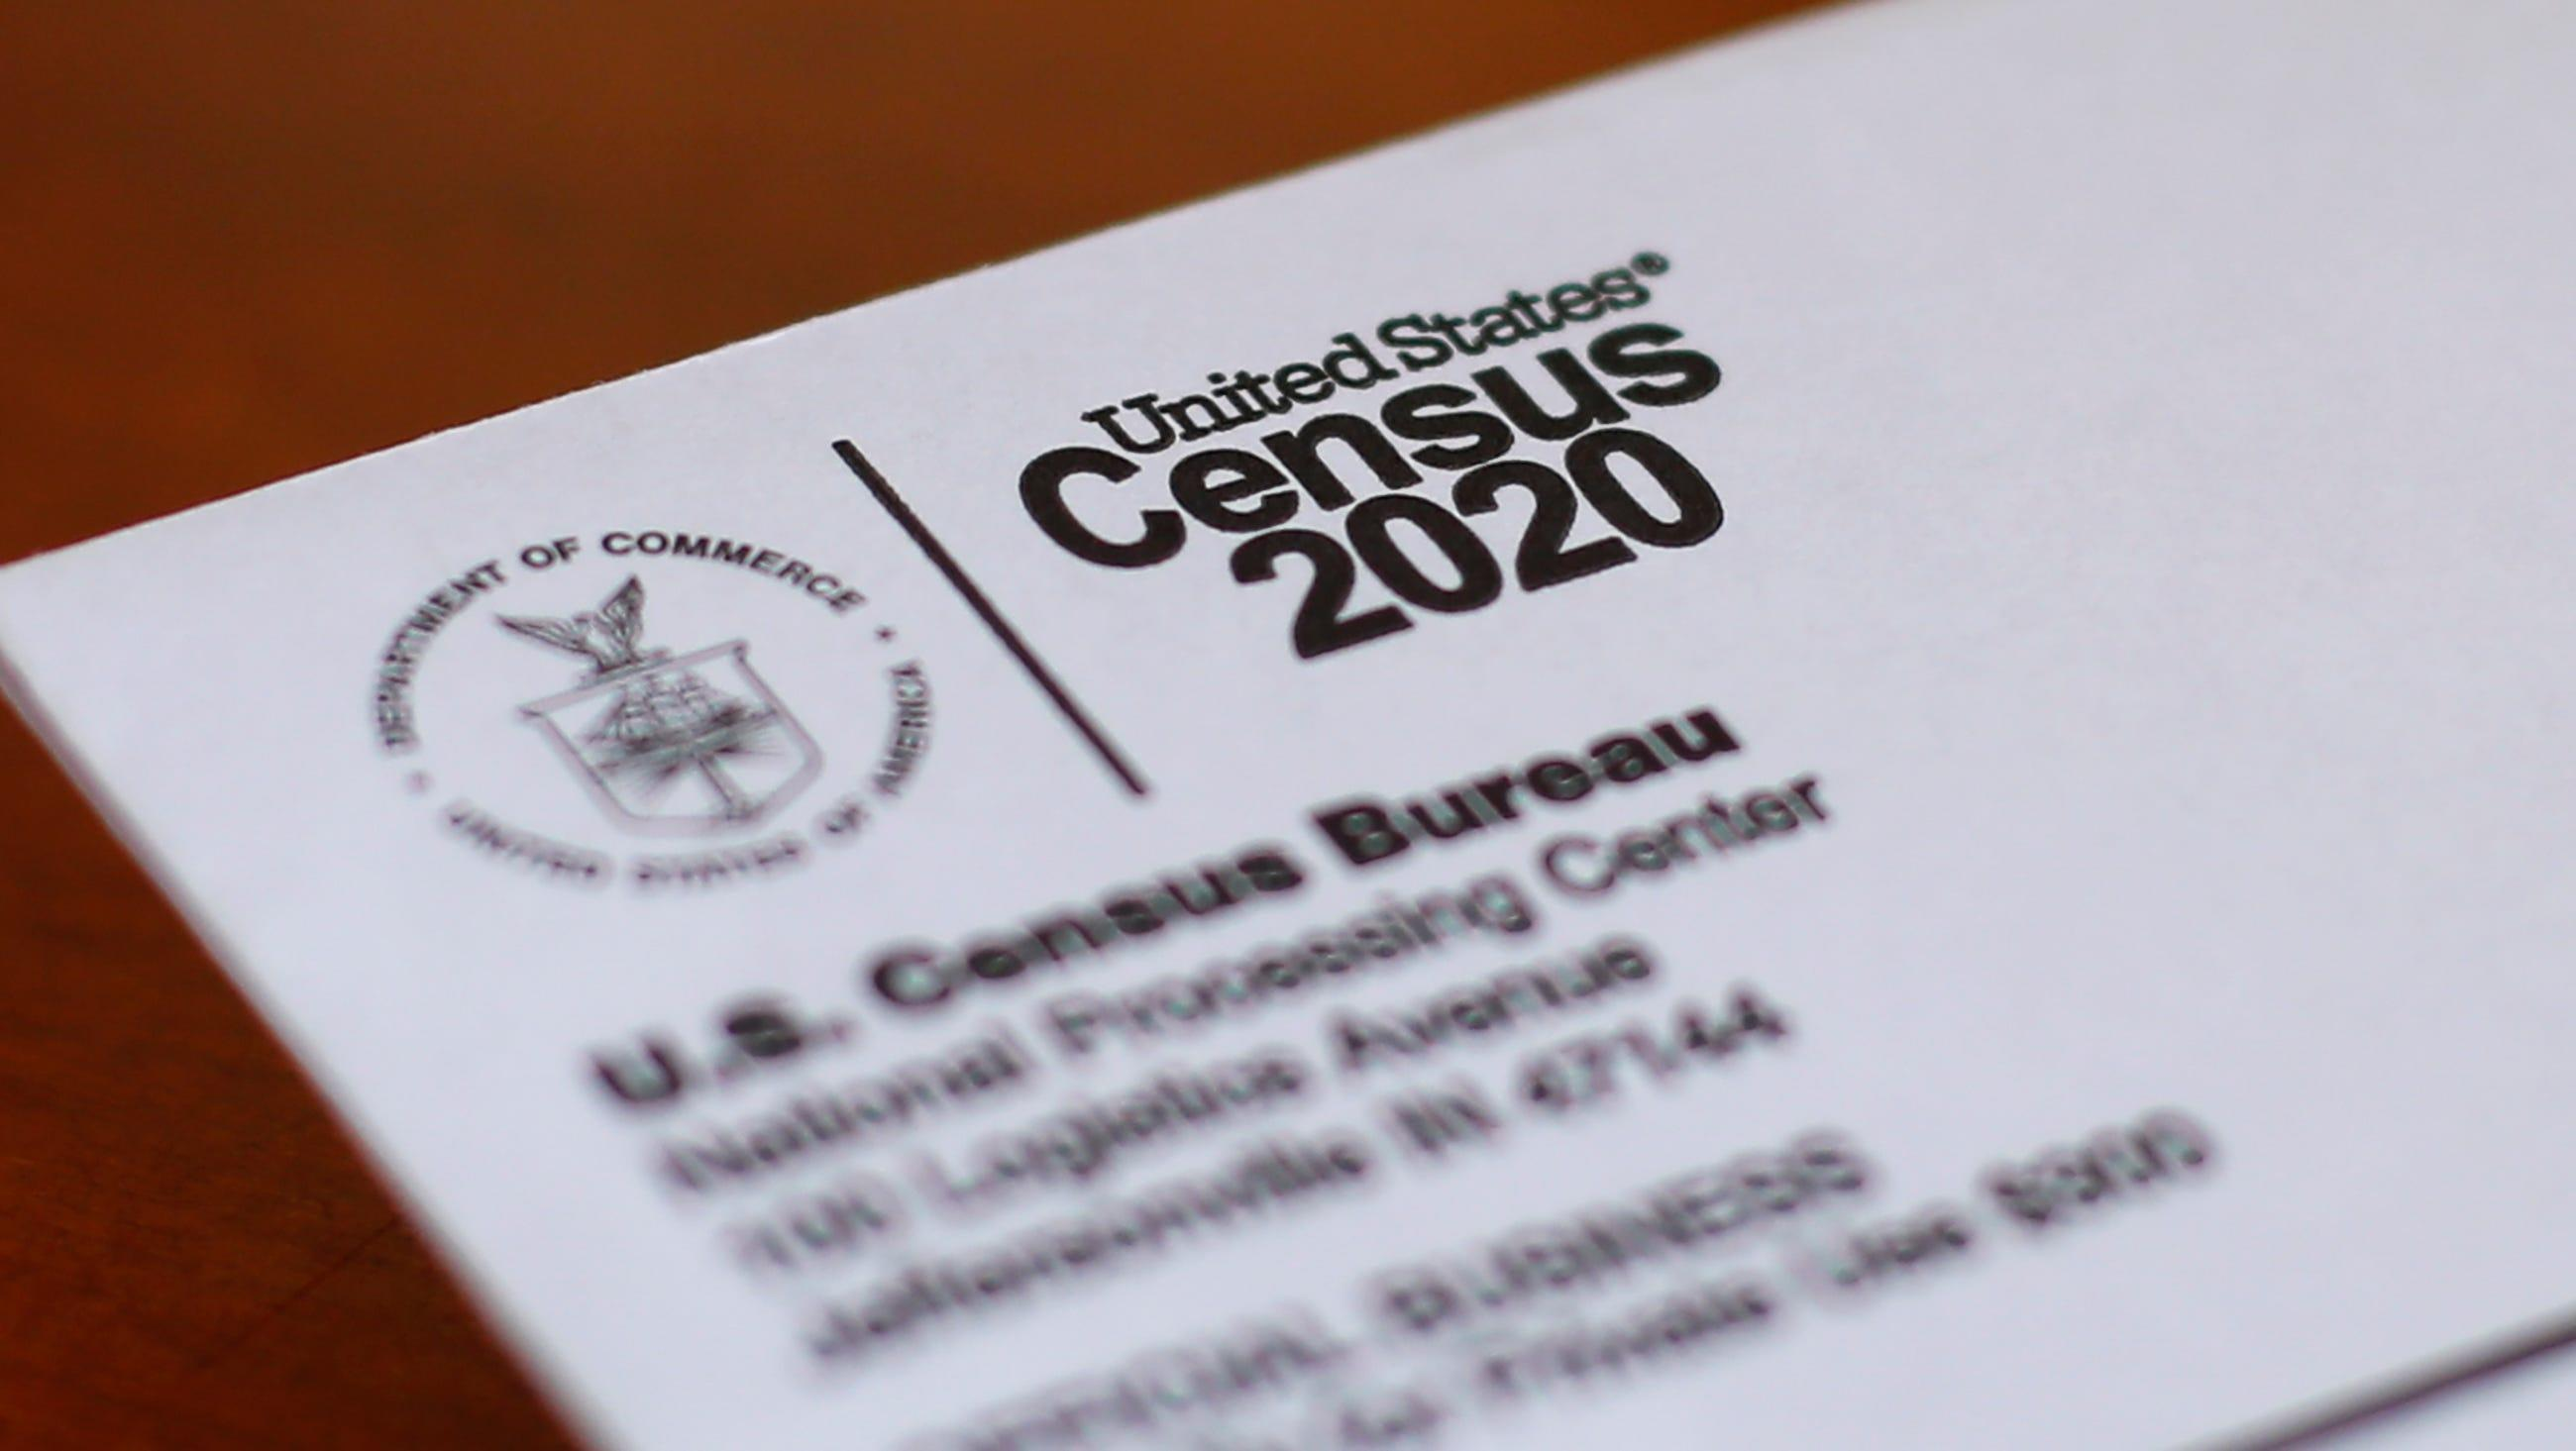 Federal judge orders 2020 census counting to continue through Oct. 31